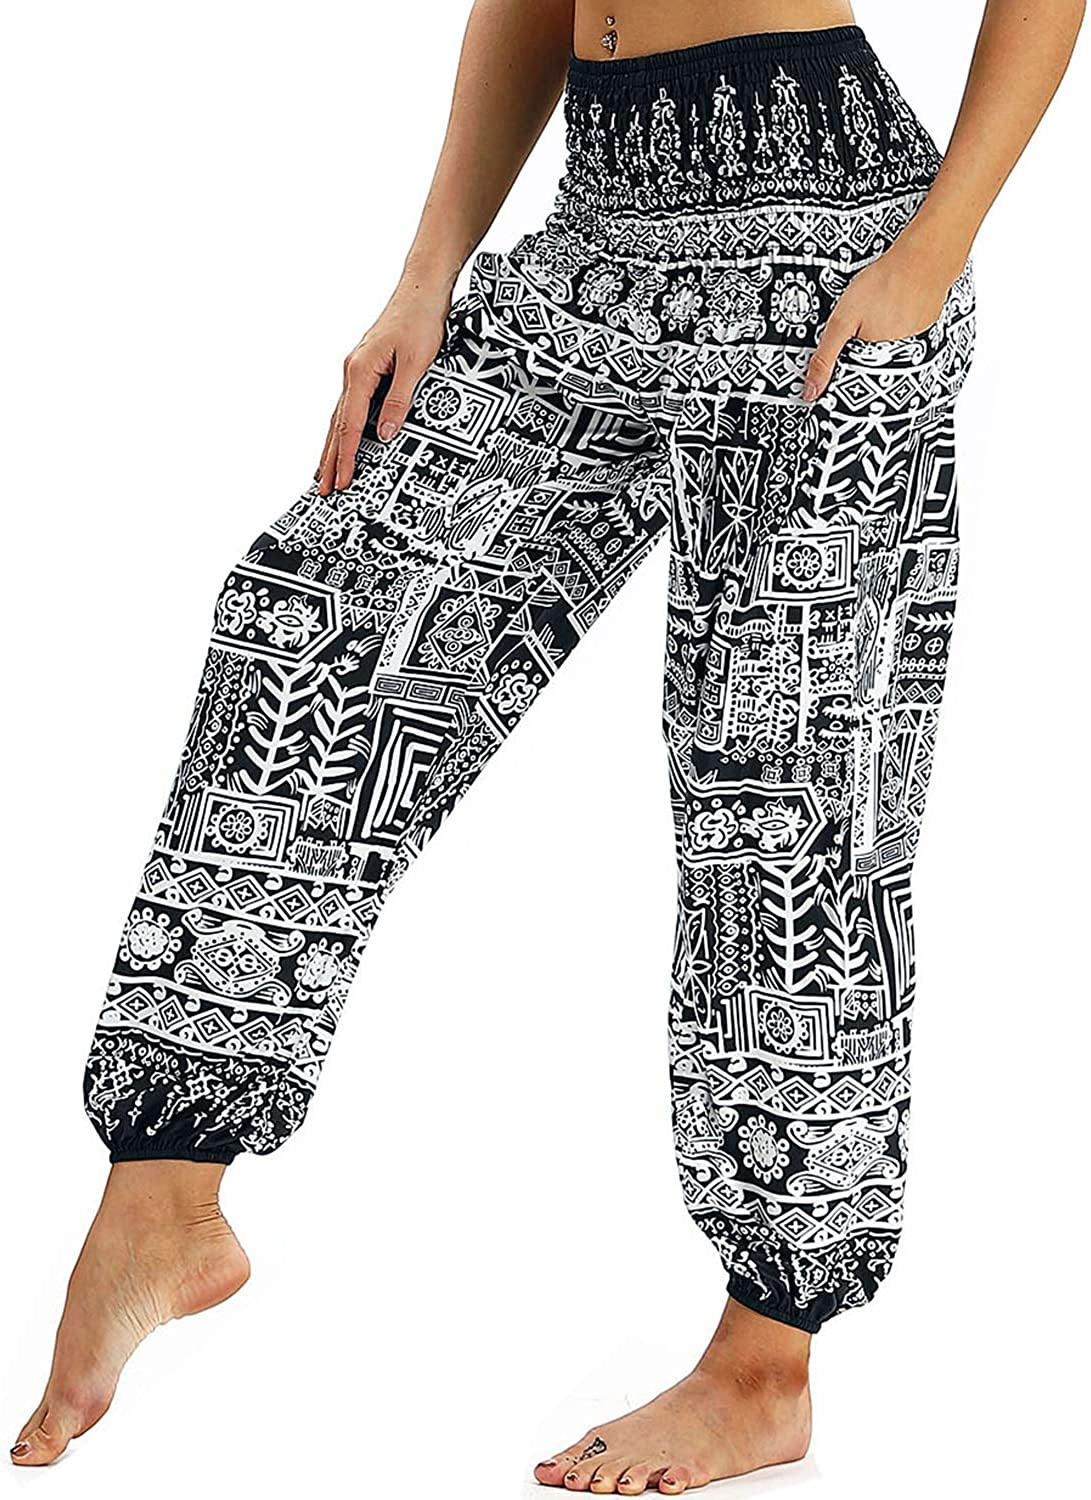 Hippie Bell Bottom Pants in Cotton Patchwork Wide Leg Gypsy Pants